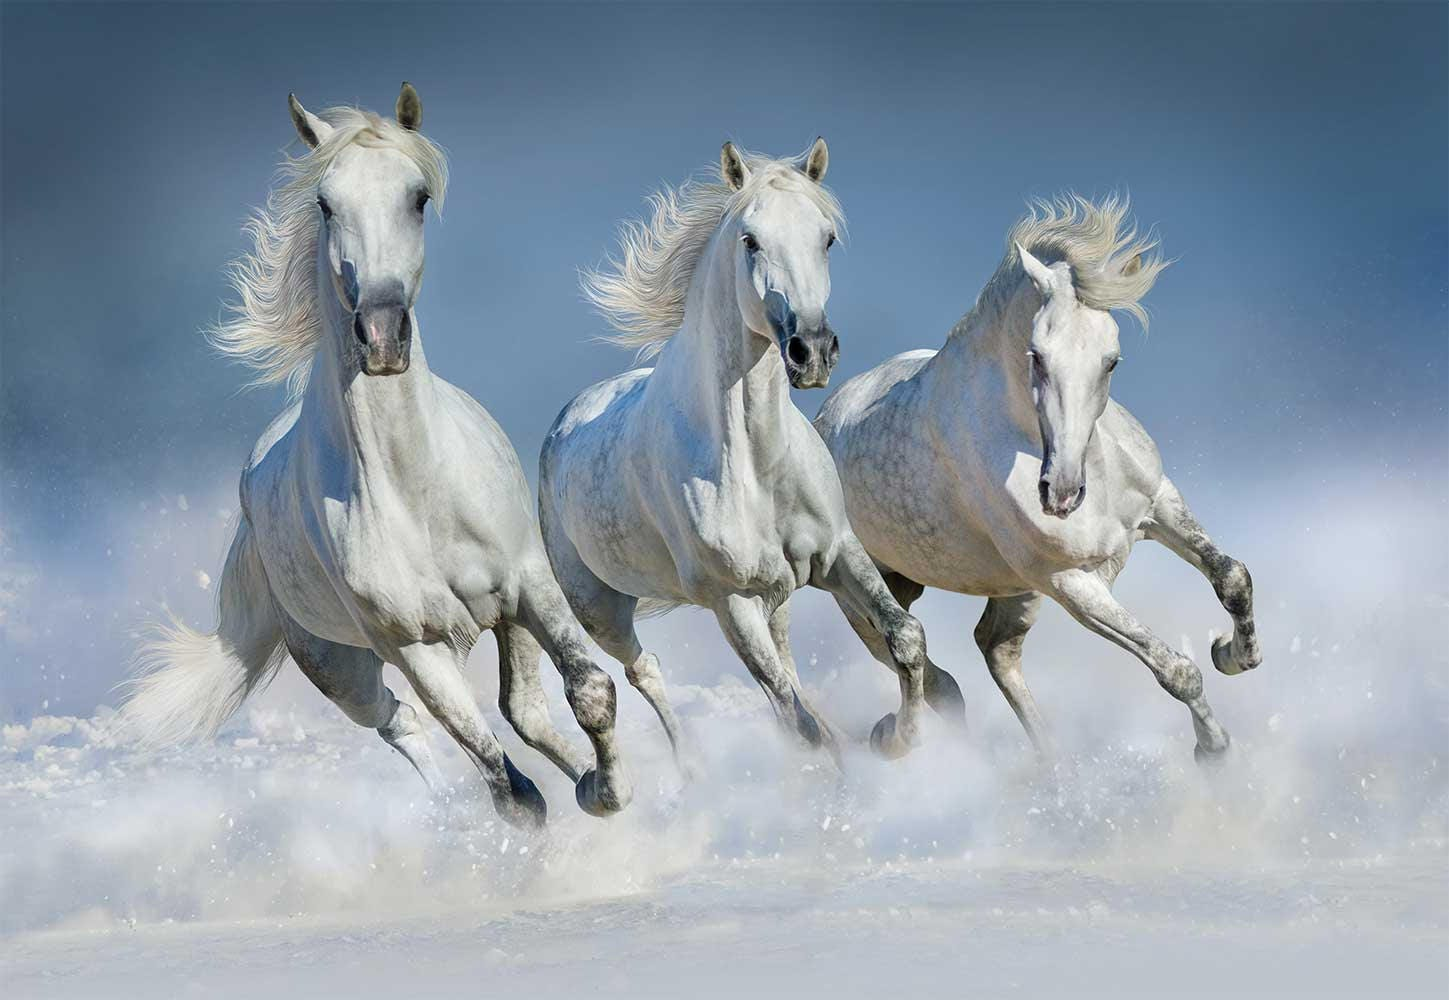 Wallpaper animals wall mural horses horses wall decal wallpaper wallpaper animals wall mural horses horses wall decal wallpaper horses wall mural amipublicfo Gallery